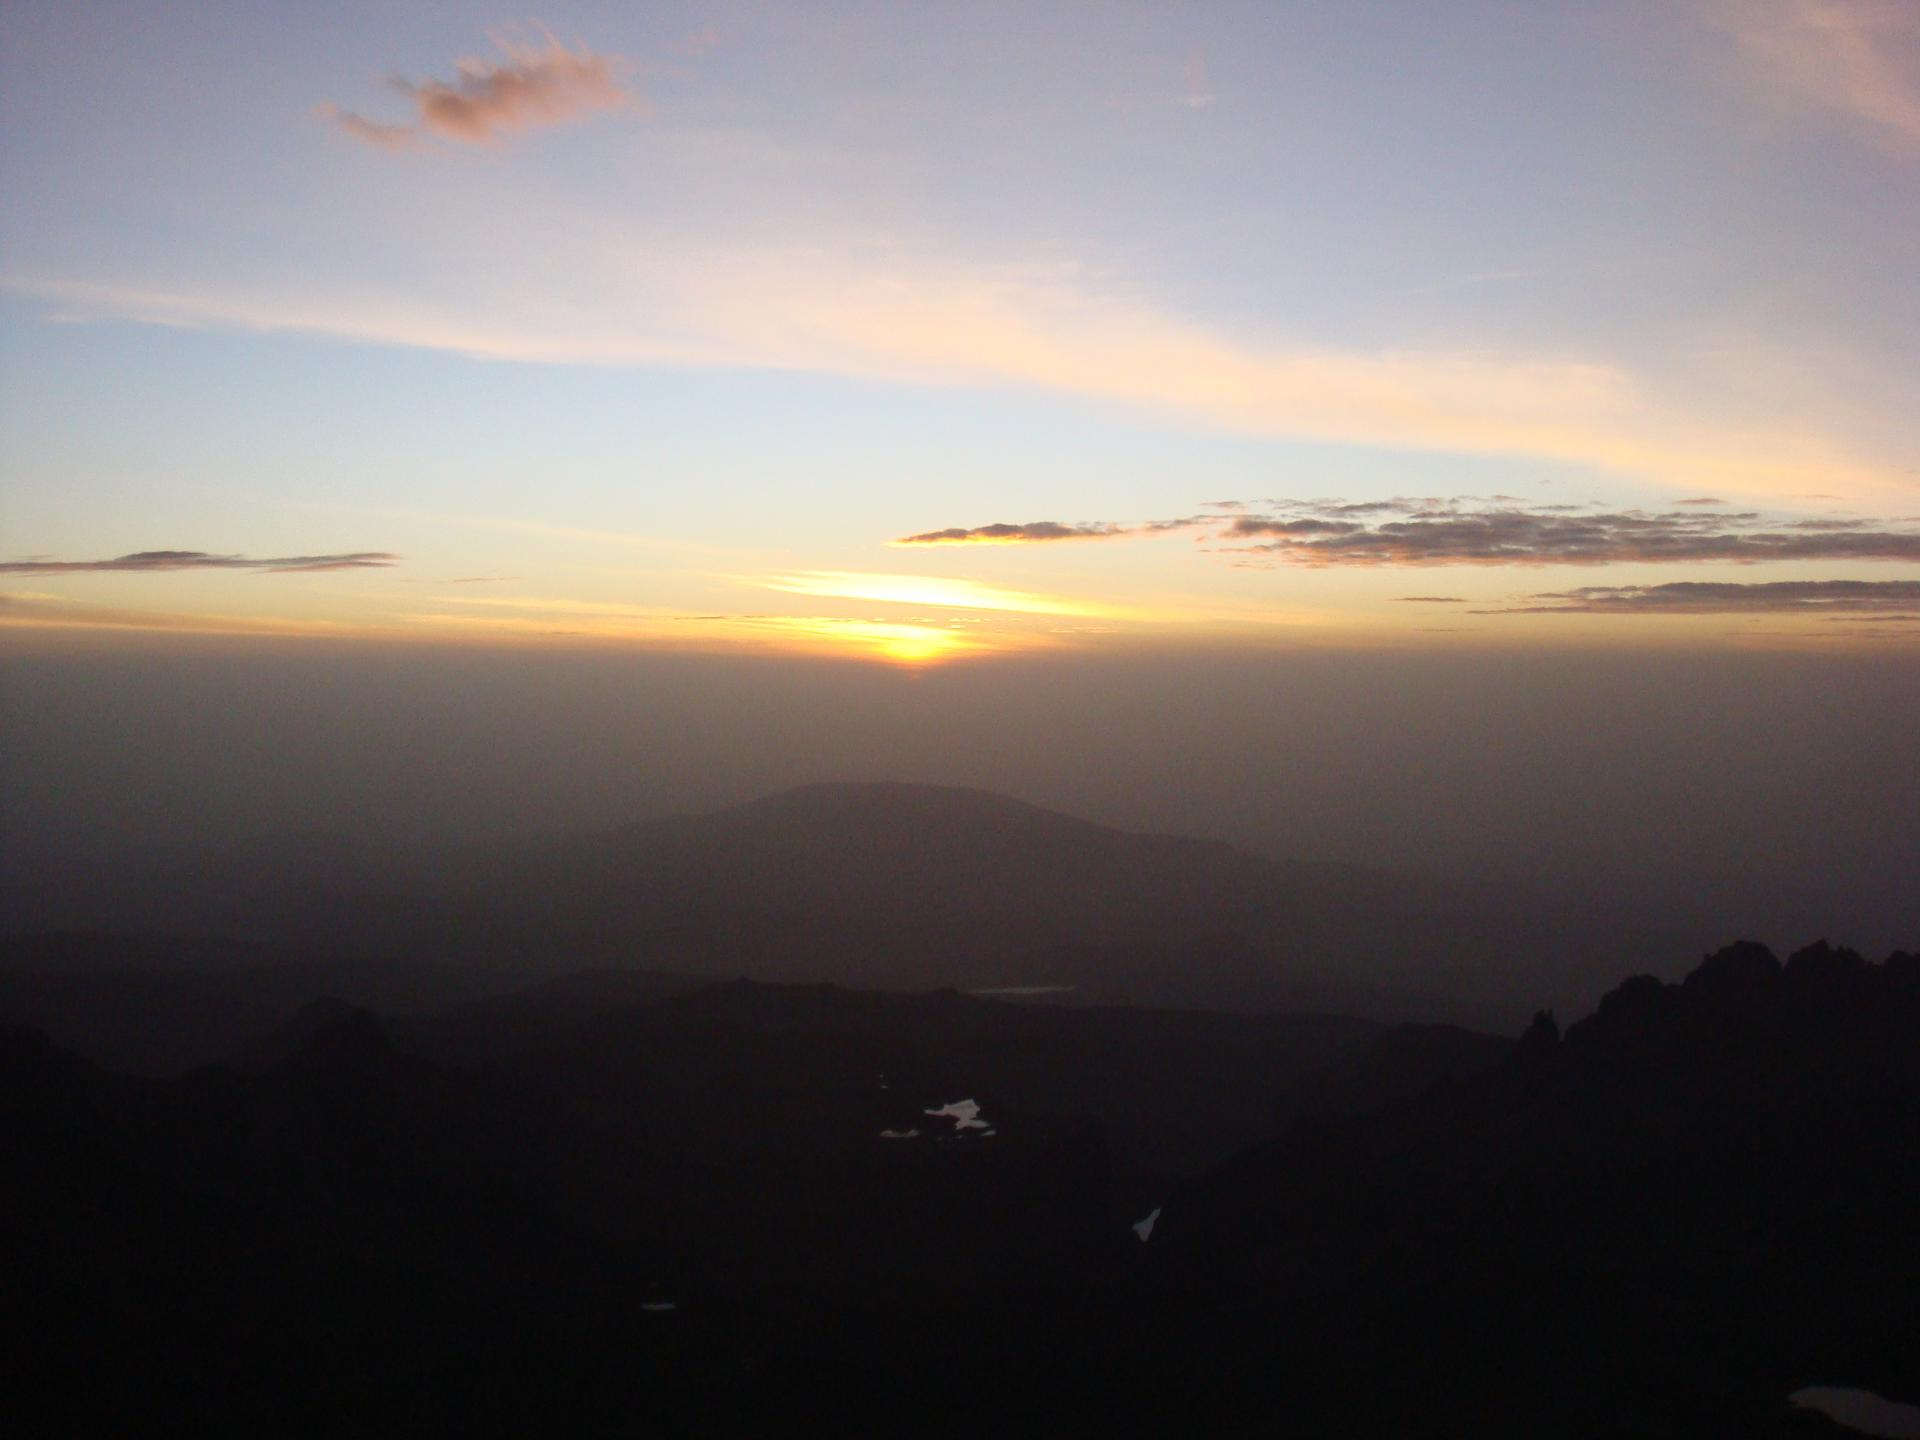 Mount kenya climb Sun rise views-mountain climbing